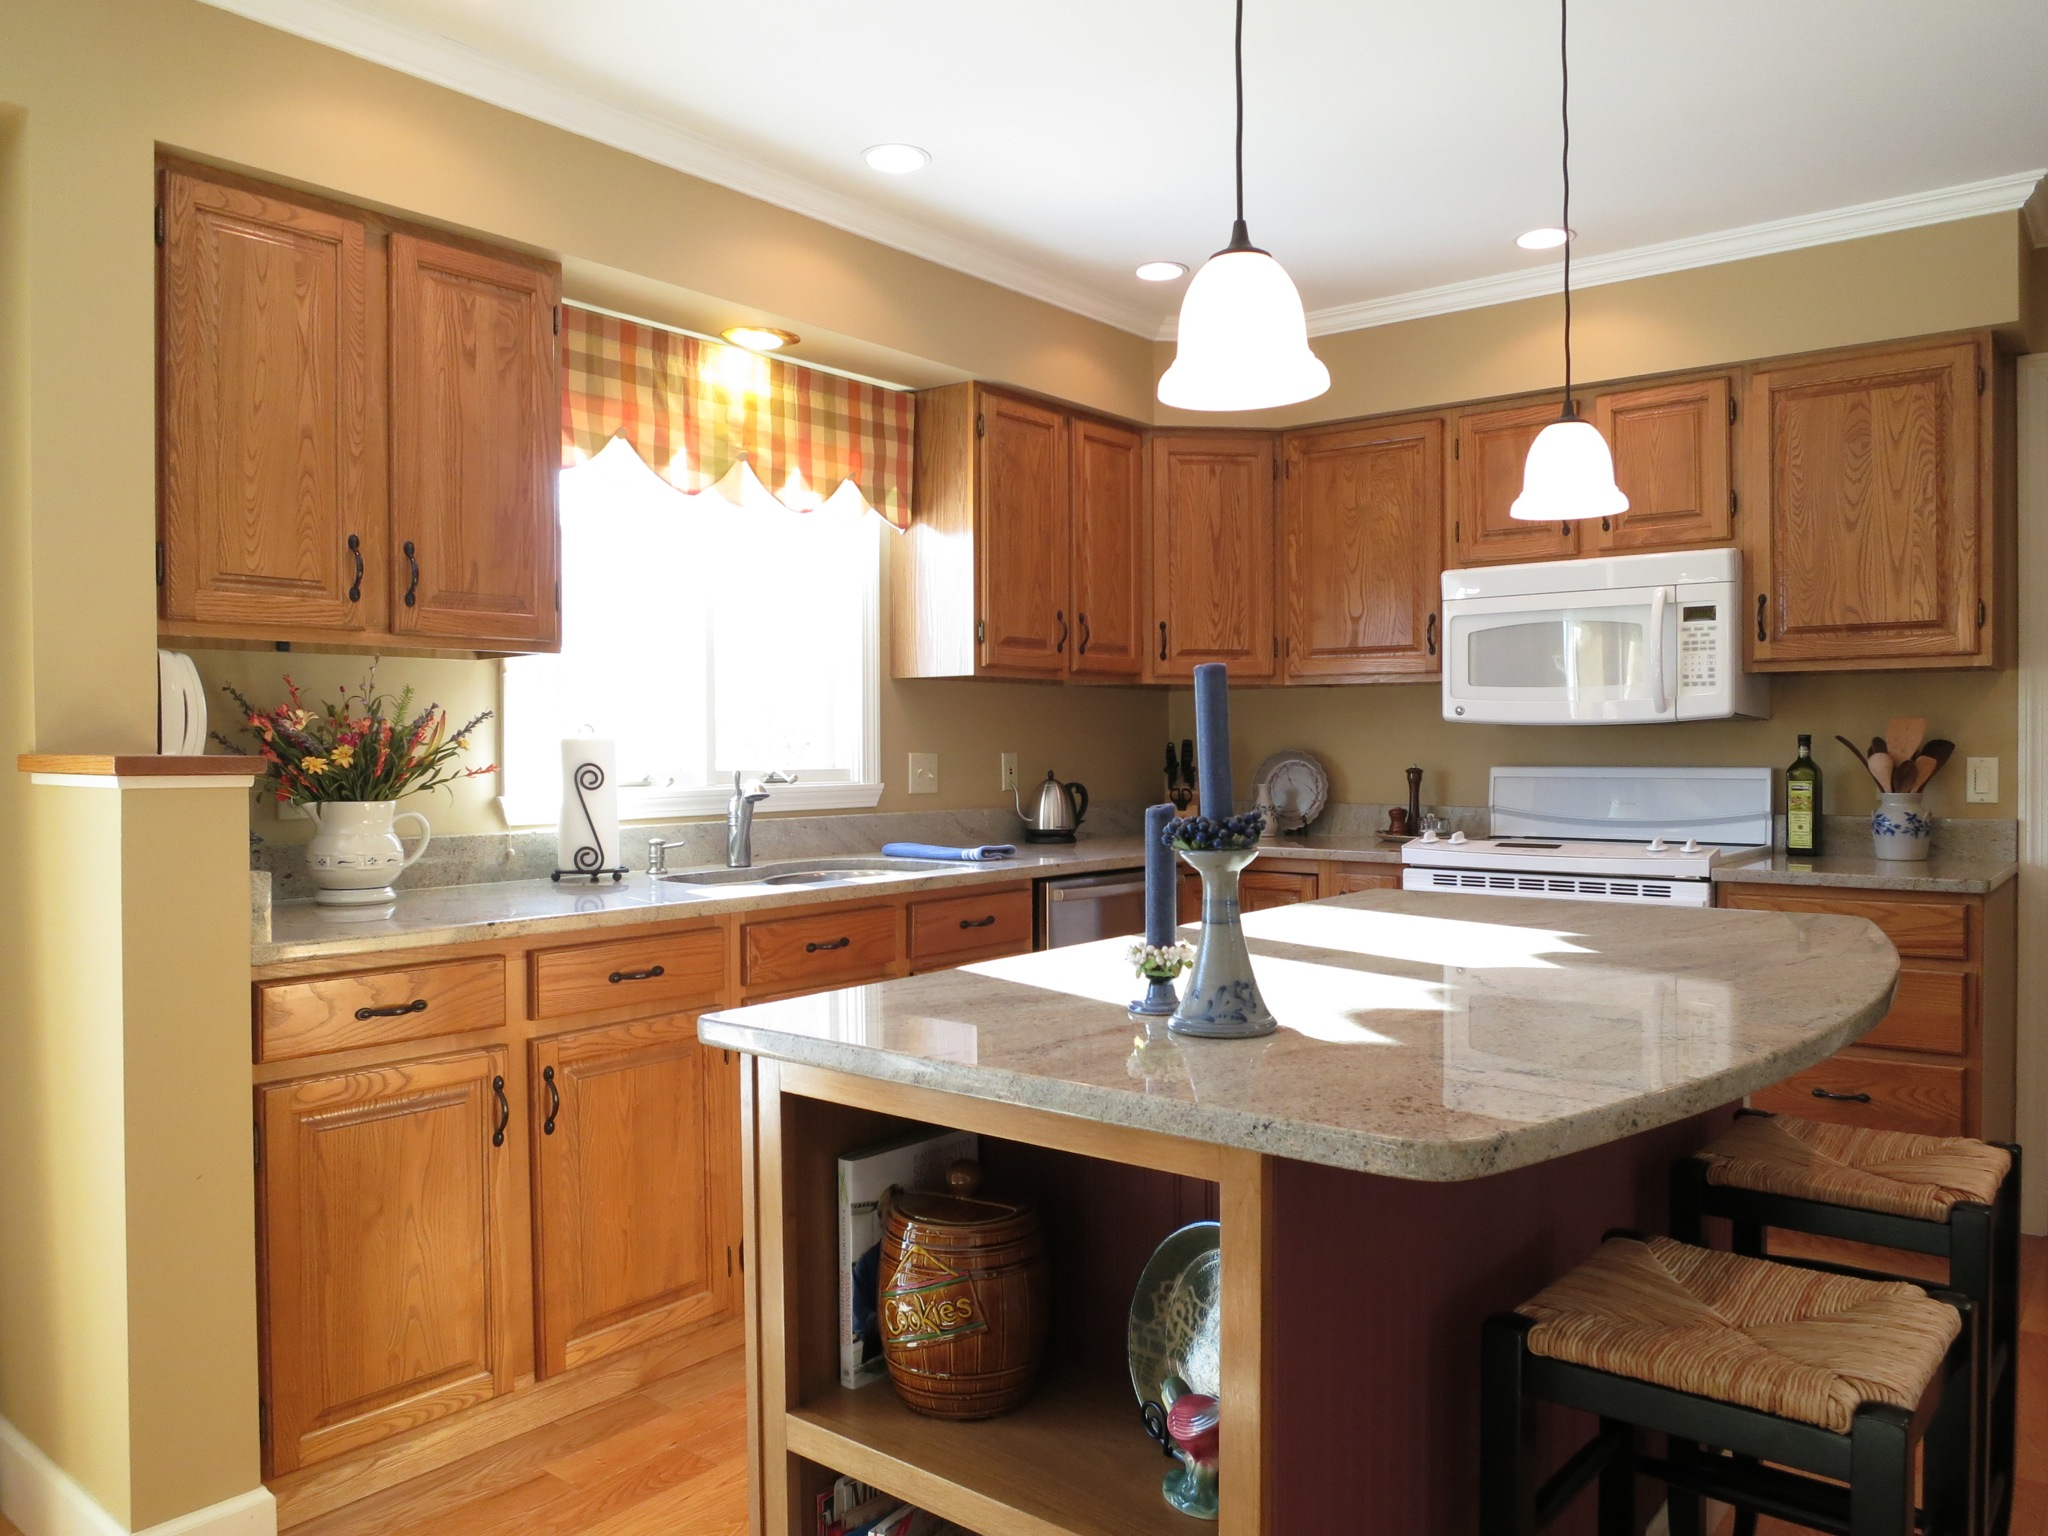 The kitchen features granite countertops, a central island with seating, pantry and newer appliances.